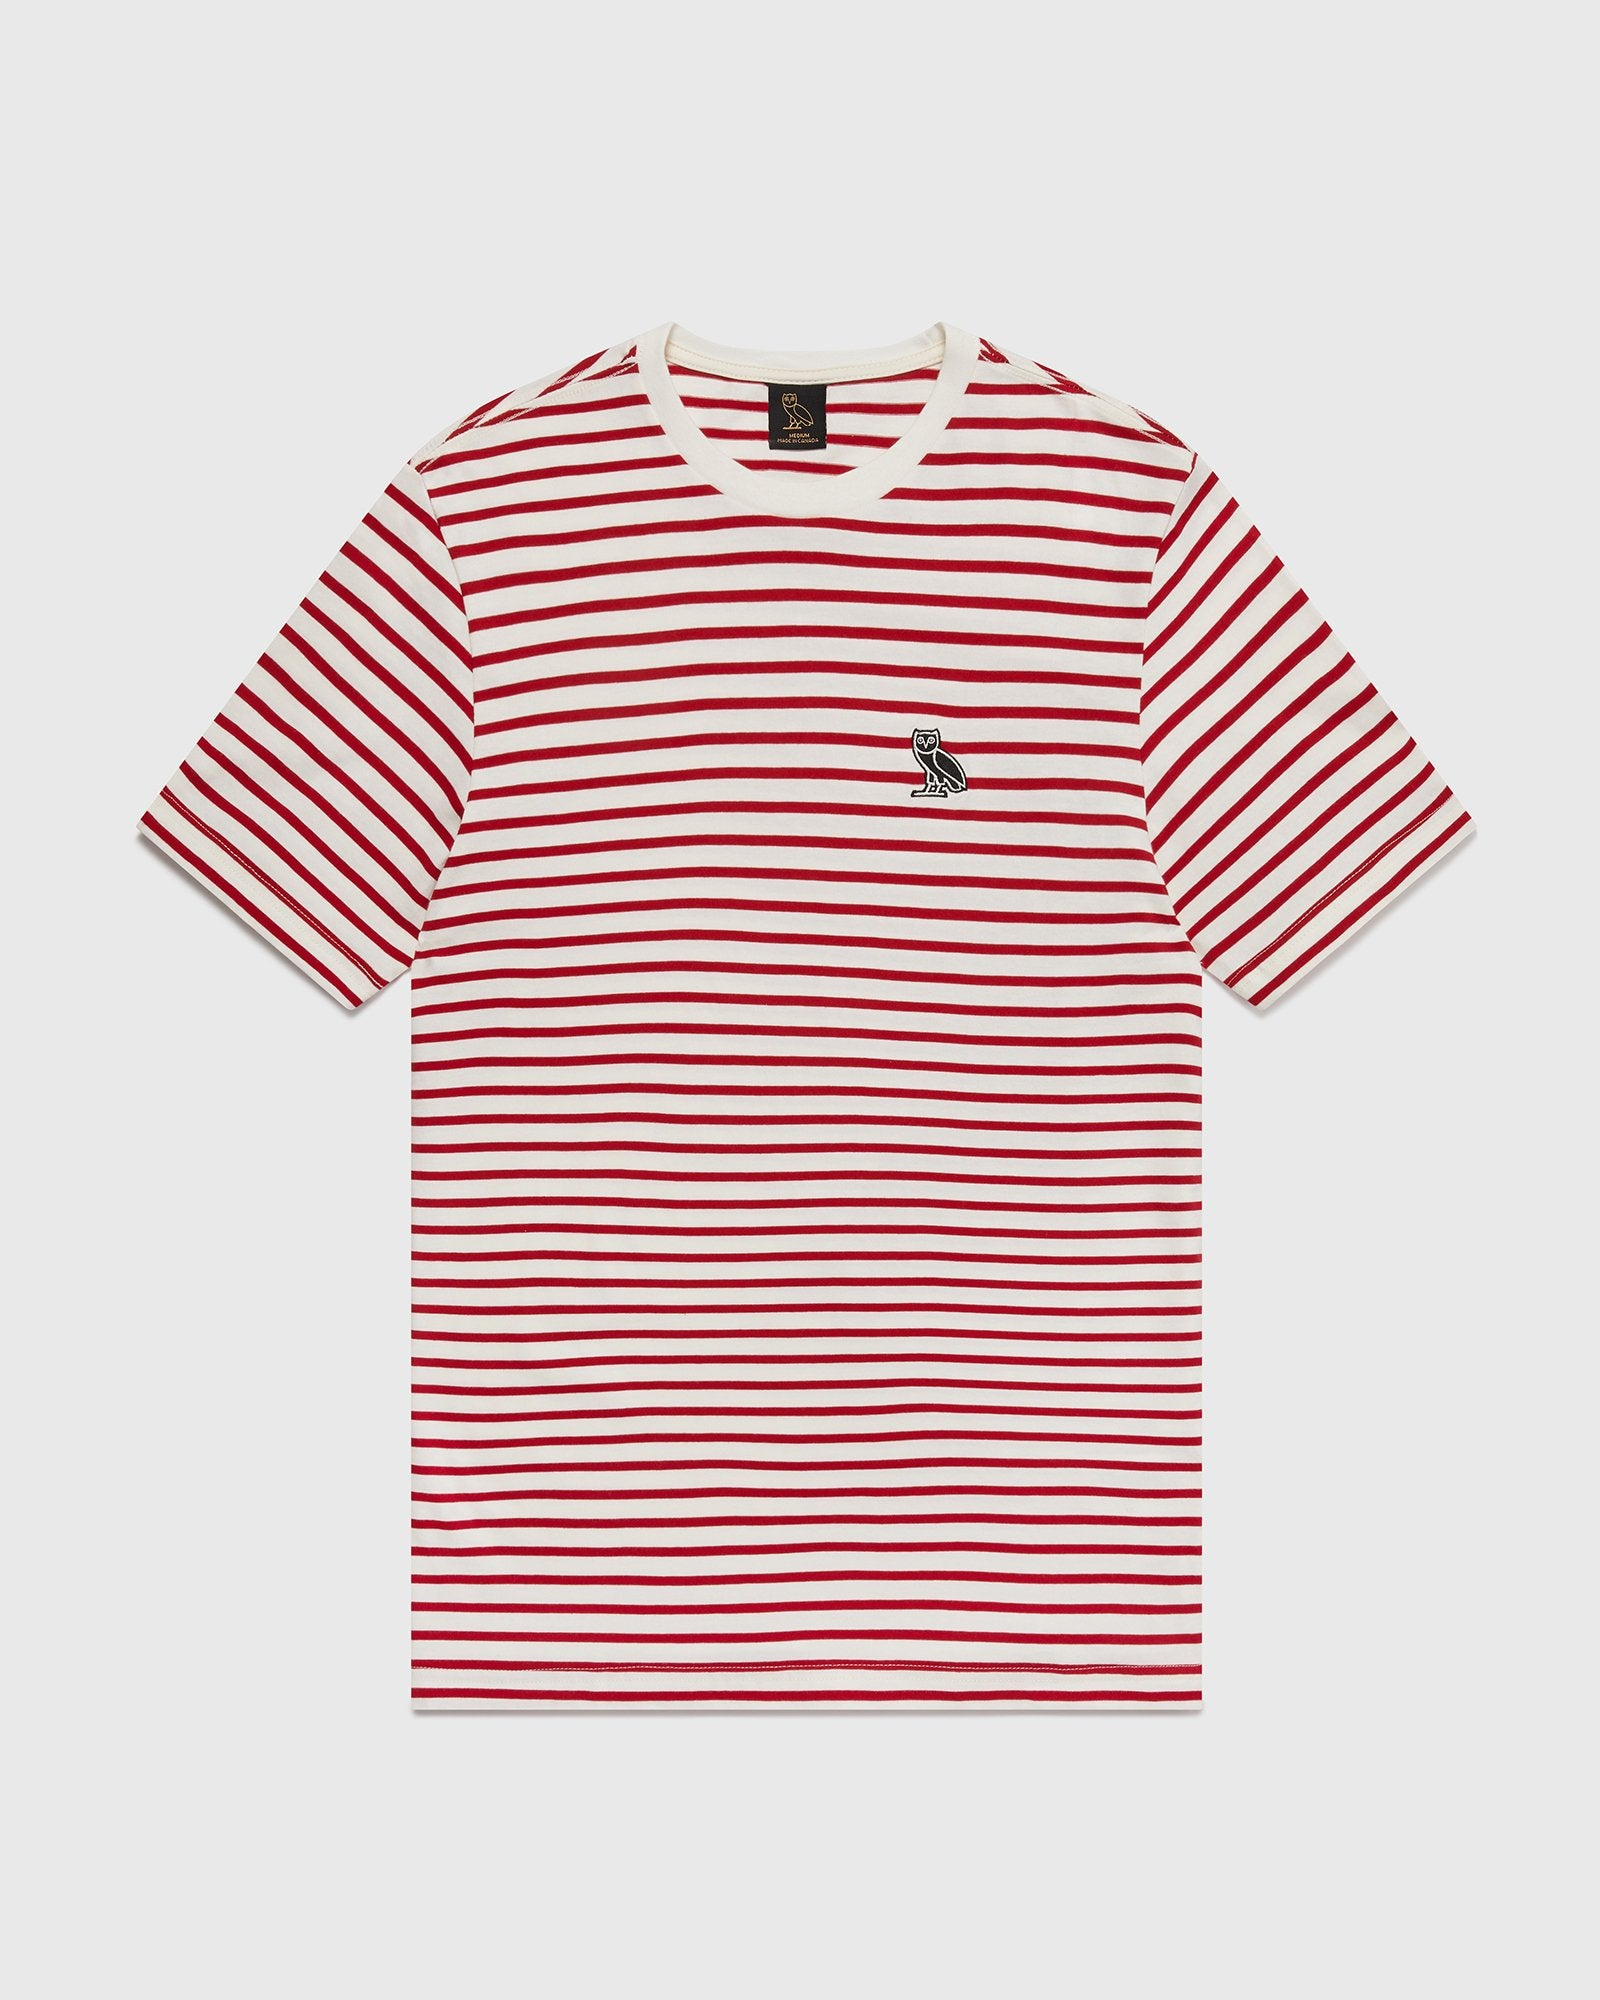 NAUTICAL STRIPE T-SHIRT - RED/CREAM IMAGE #1